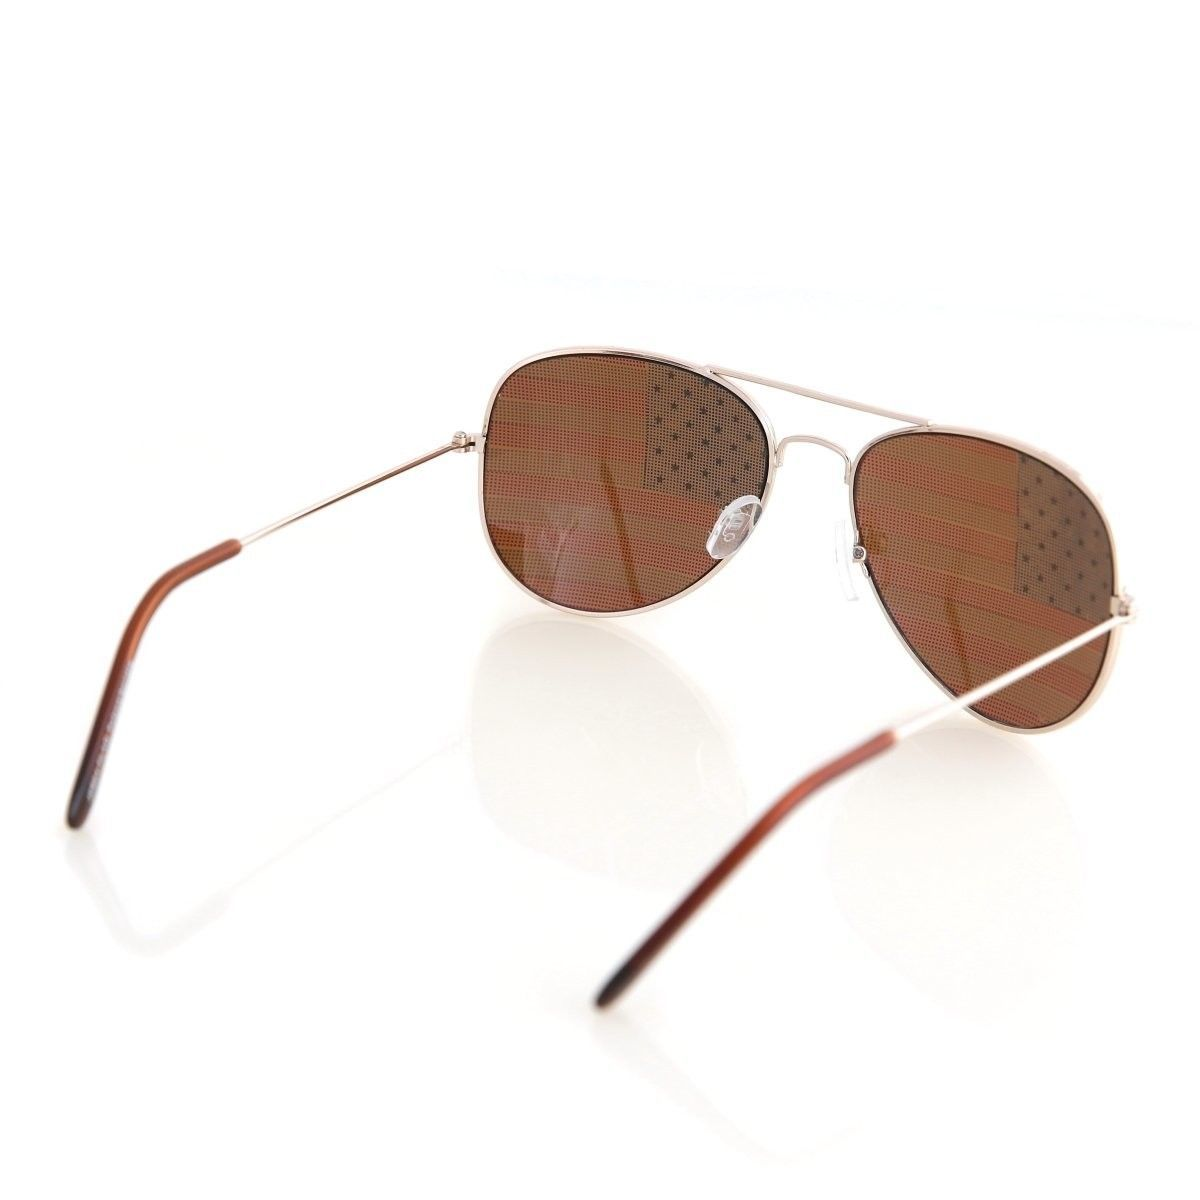 Shaderz USA America Aviator Sunglasses - Great Accesory for 4th of July - Gold C